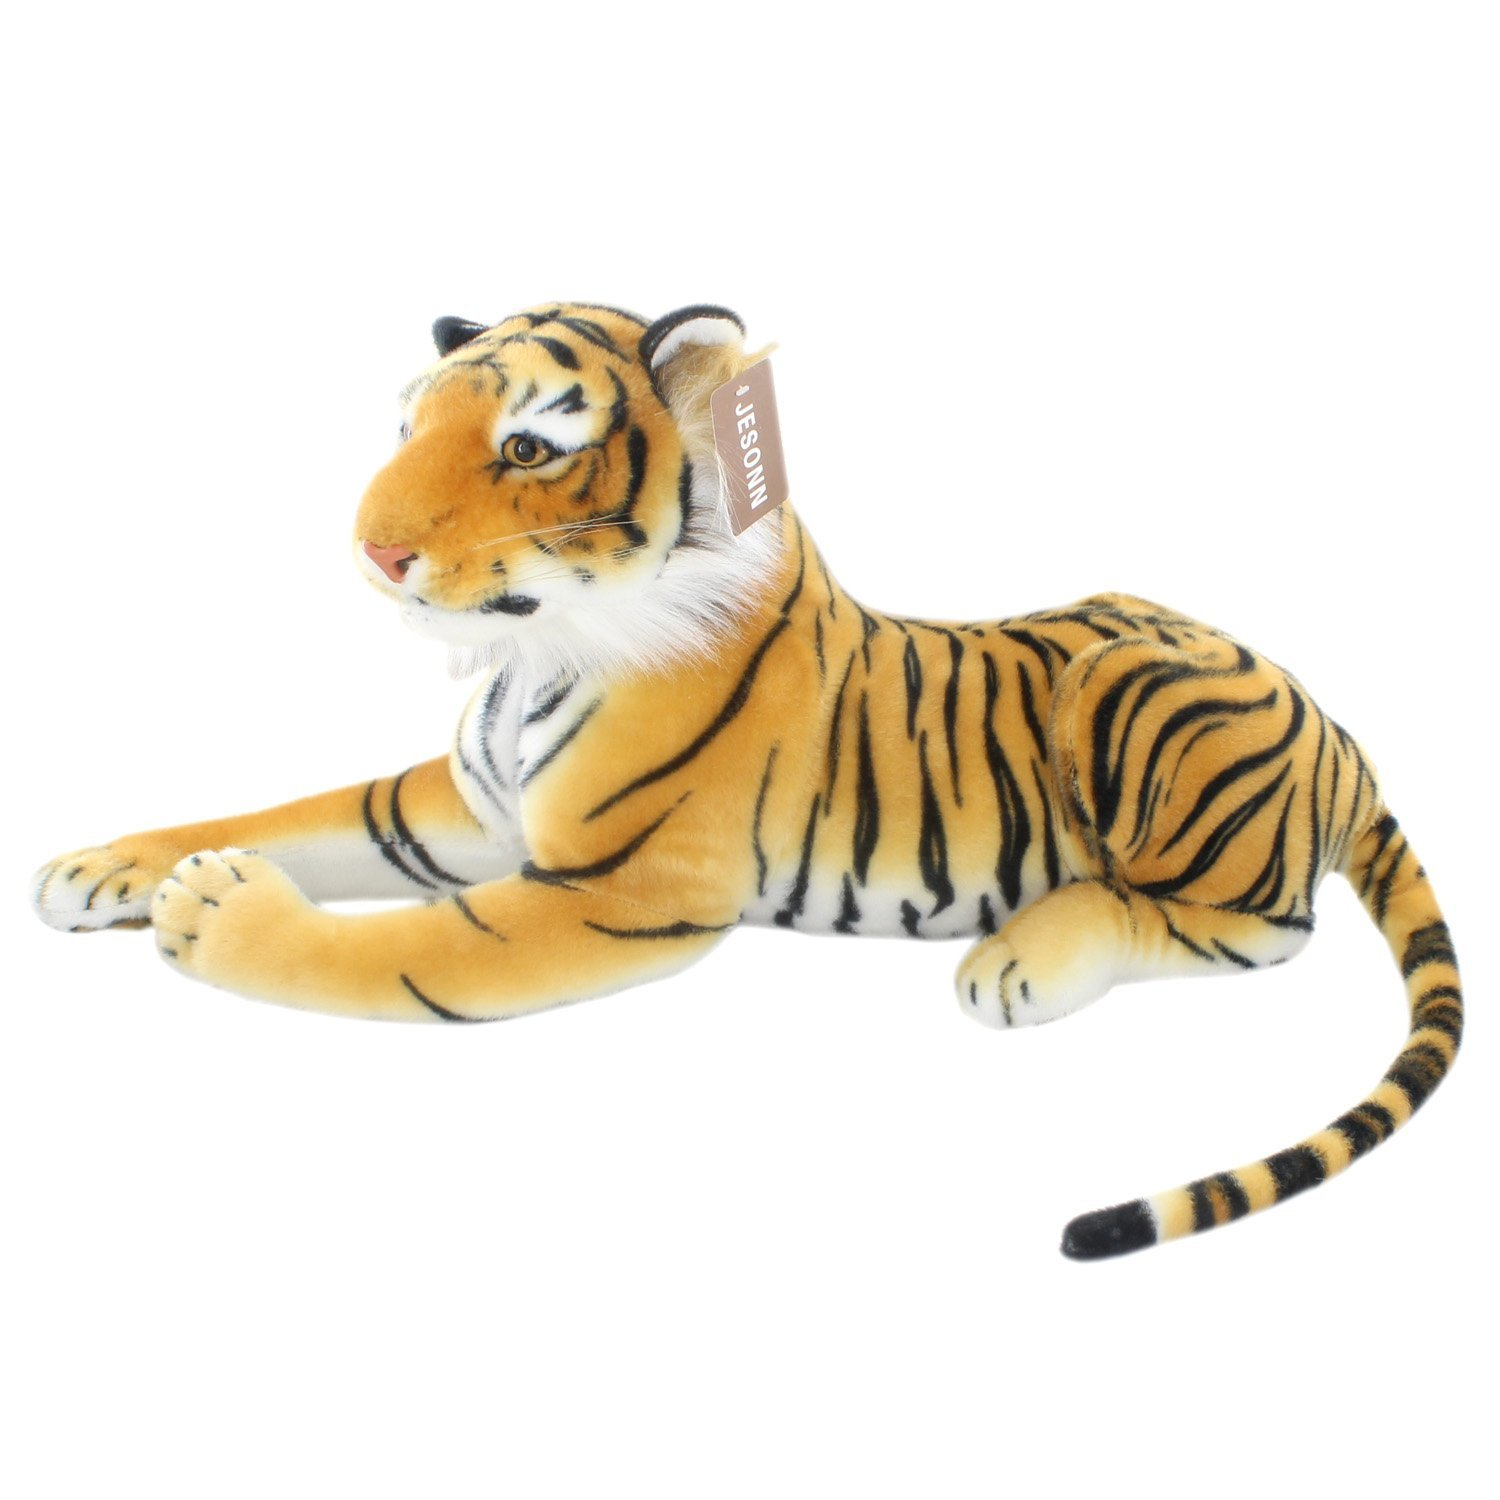 JESONN Realistic Stuffed Animals Tiger Toys Plush (White, 13.5 Inch)